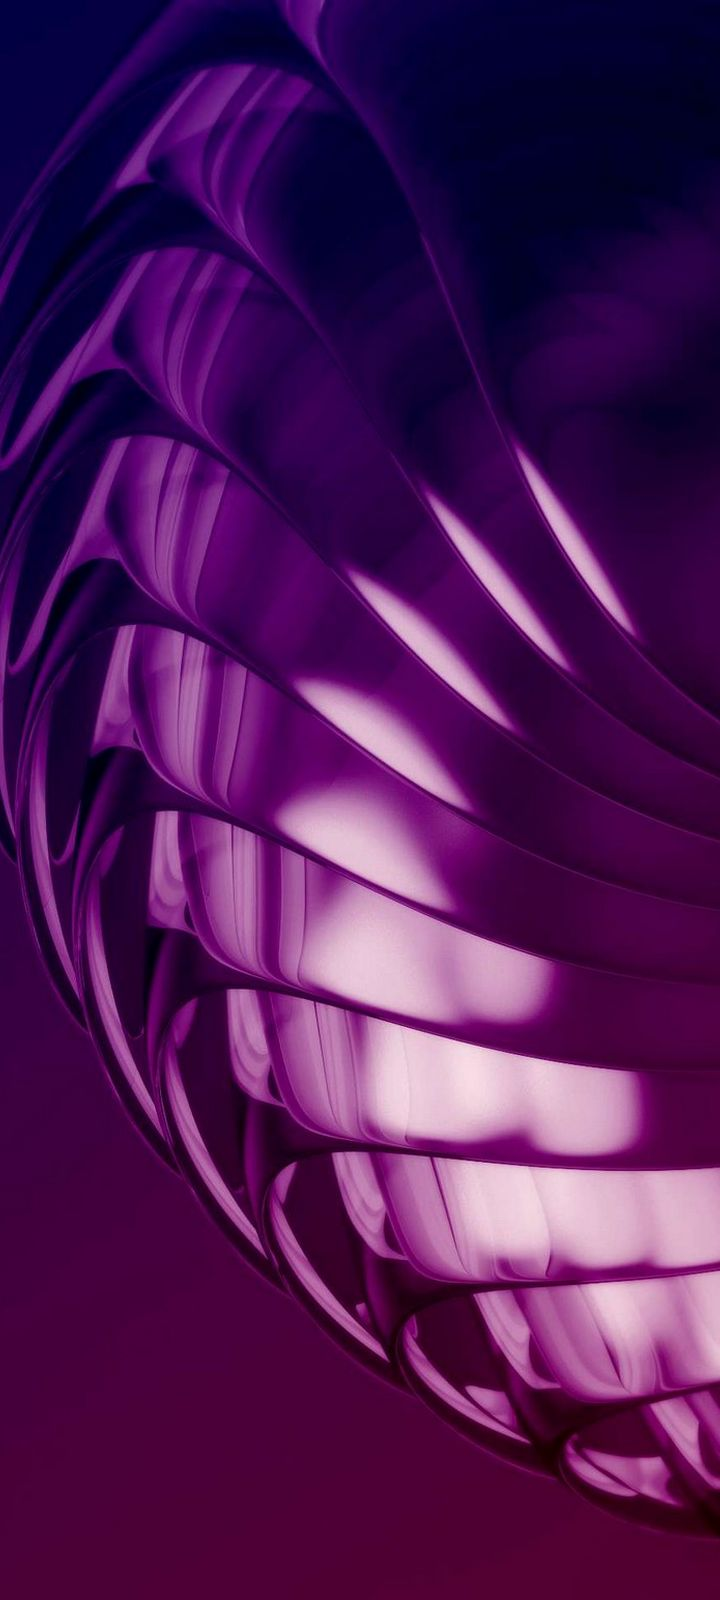 Purple Layers 3D Abstract Wallpaper 720x1600